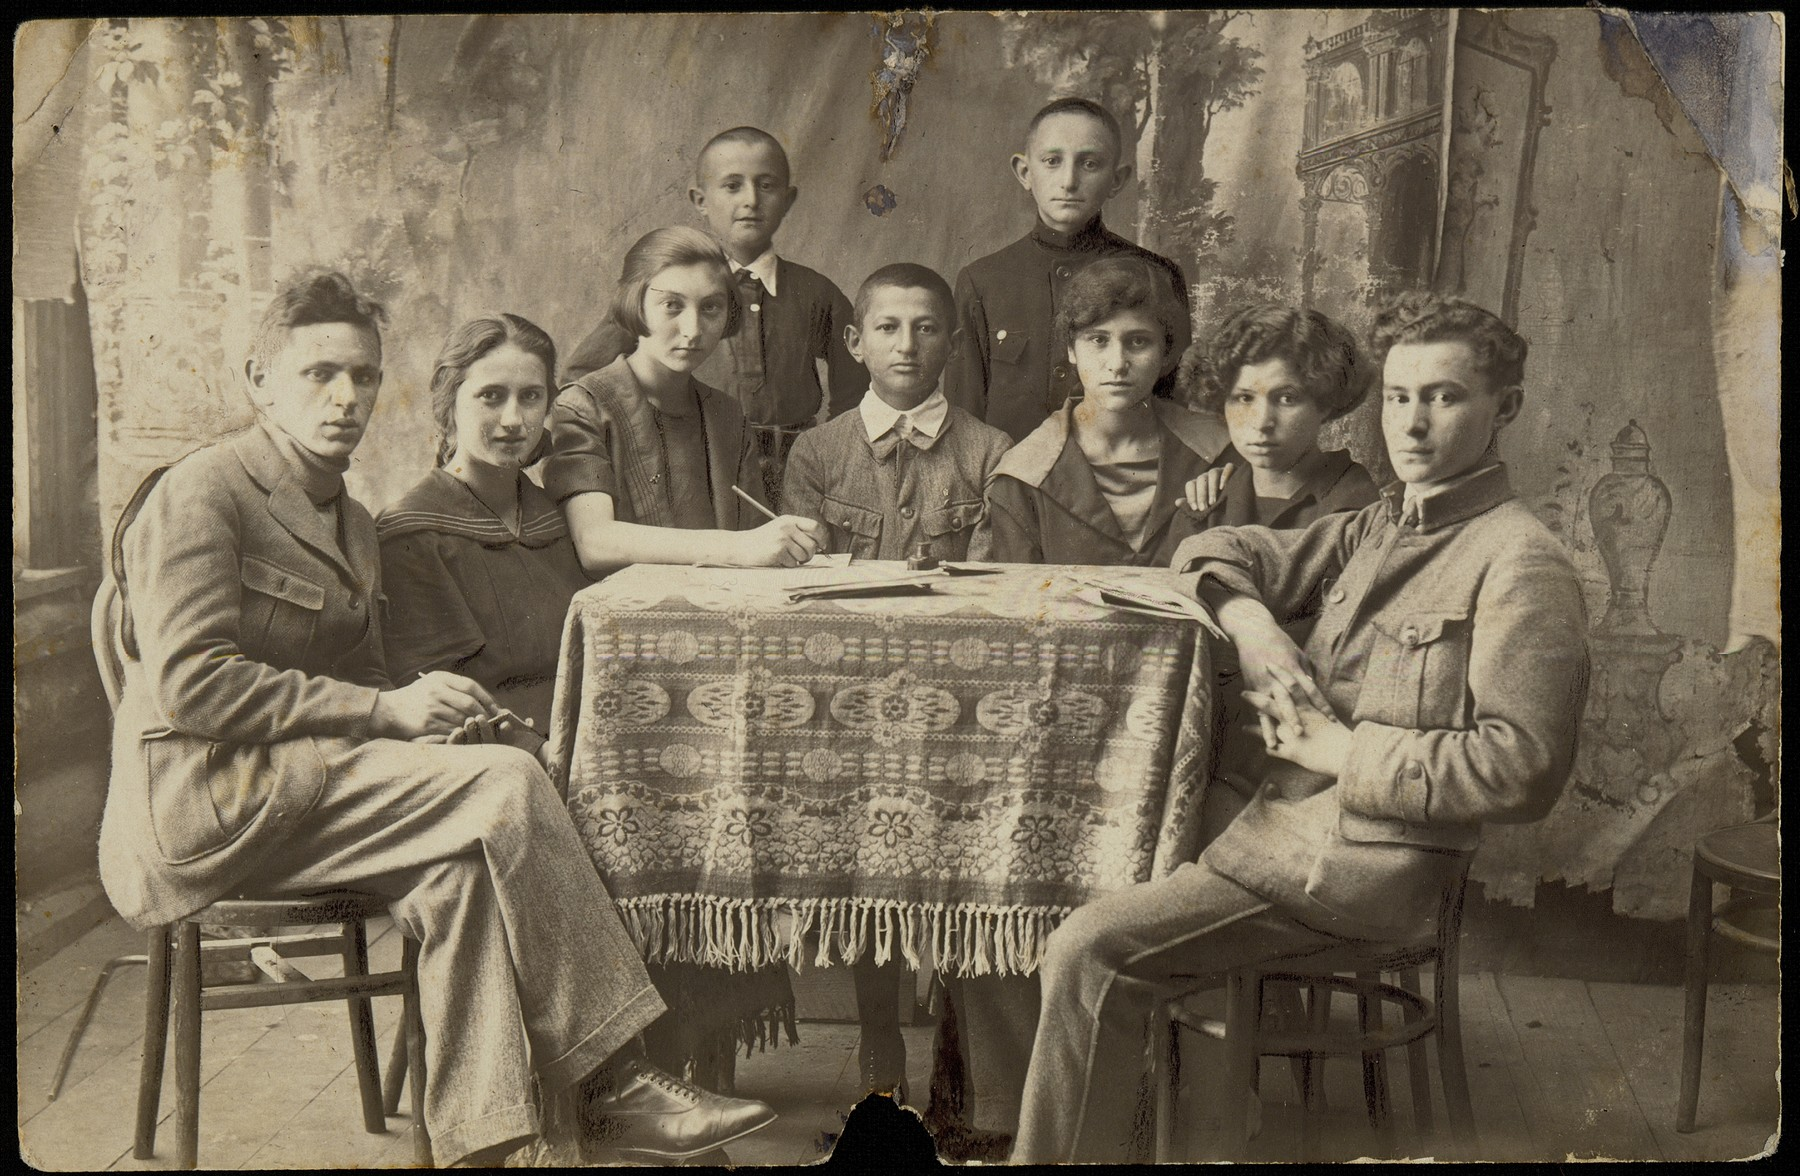 Board members of the Brenner Zionist Club and Jewish National Fund (Keren Kayemet) in Eisiskes, pose around a table.    Among those pictured are: Peretz Kaleko (sitting at the far right), Leah Koppelman (sitting third from the right), Leibke Sonenson (sitting fourth from the right), and club secretary, Zipporah (Katz) Sonenson (fifth from the right). Peretz Kaleko and his wife Leah Koppelman immigrated to Palestine before the war.  Leibke Sonenson was killed by the Germans in the September 1941 mass shooting action in Eisiskes.